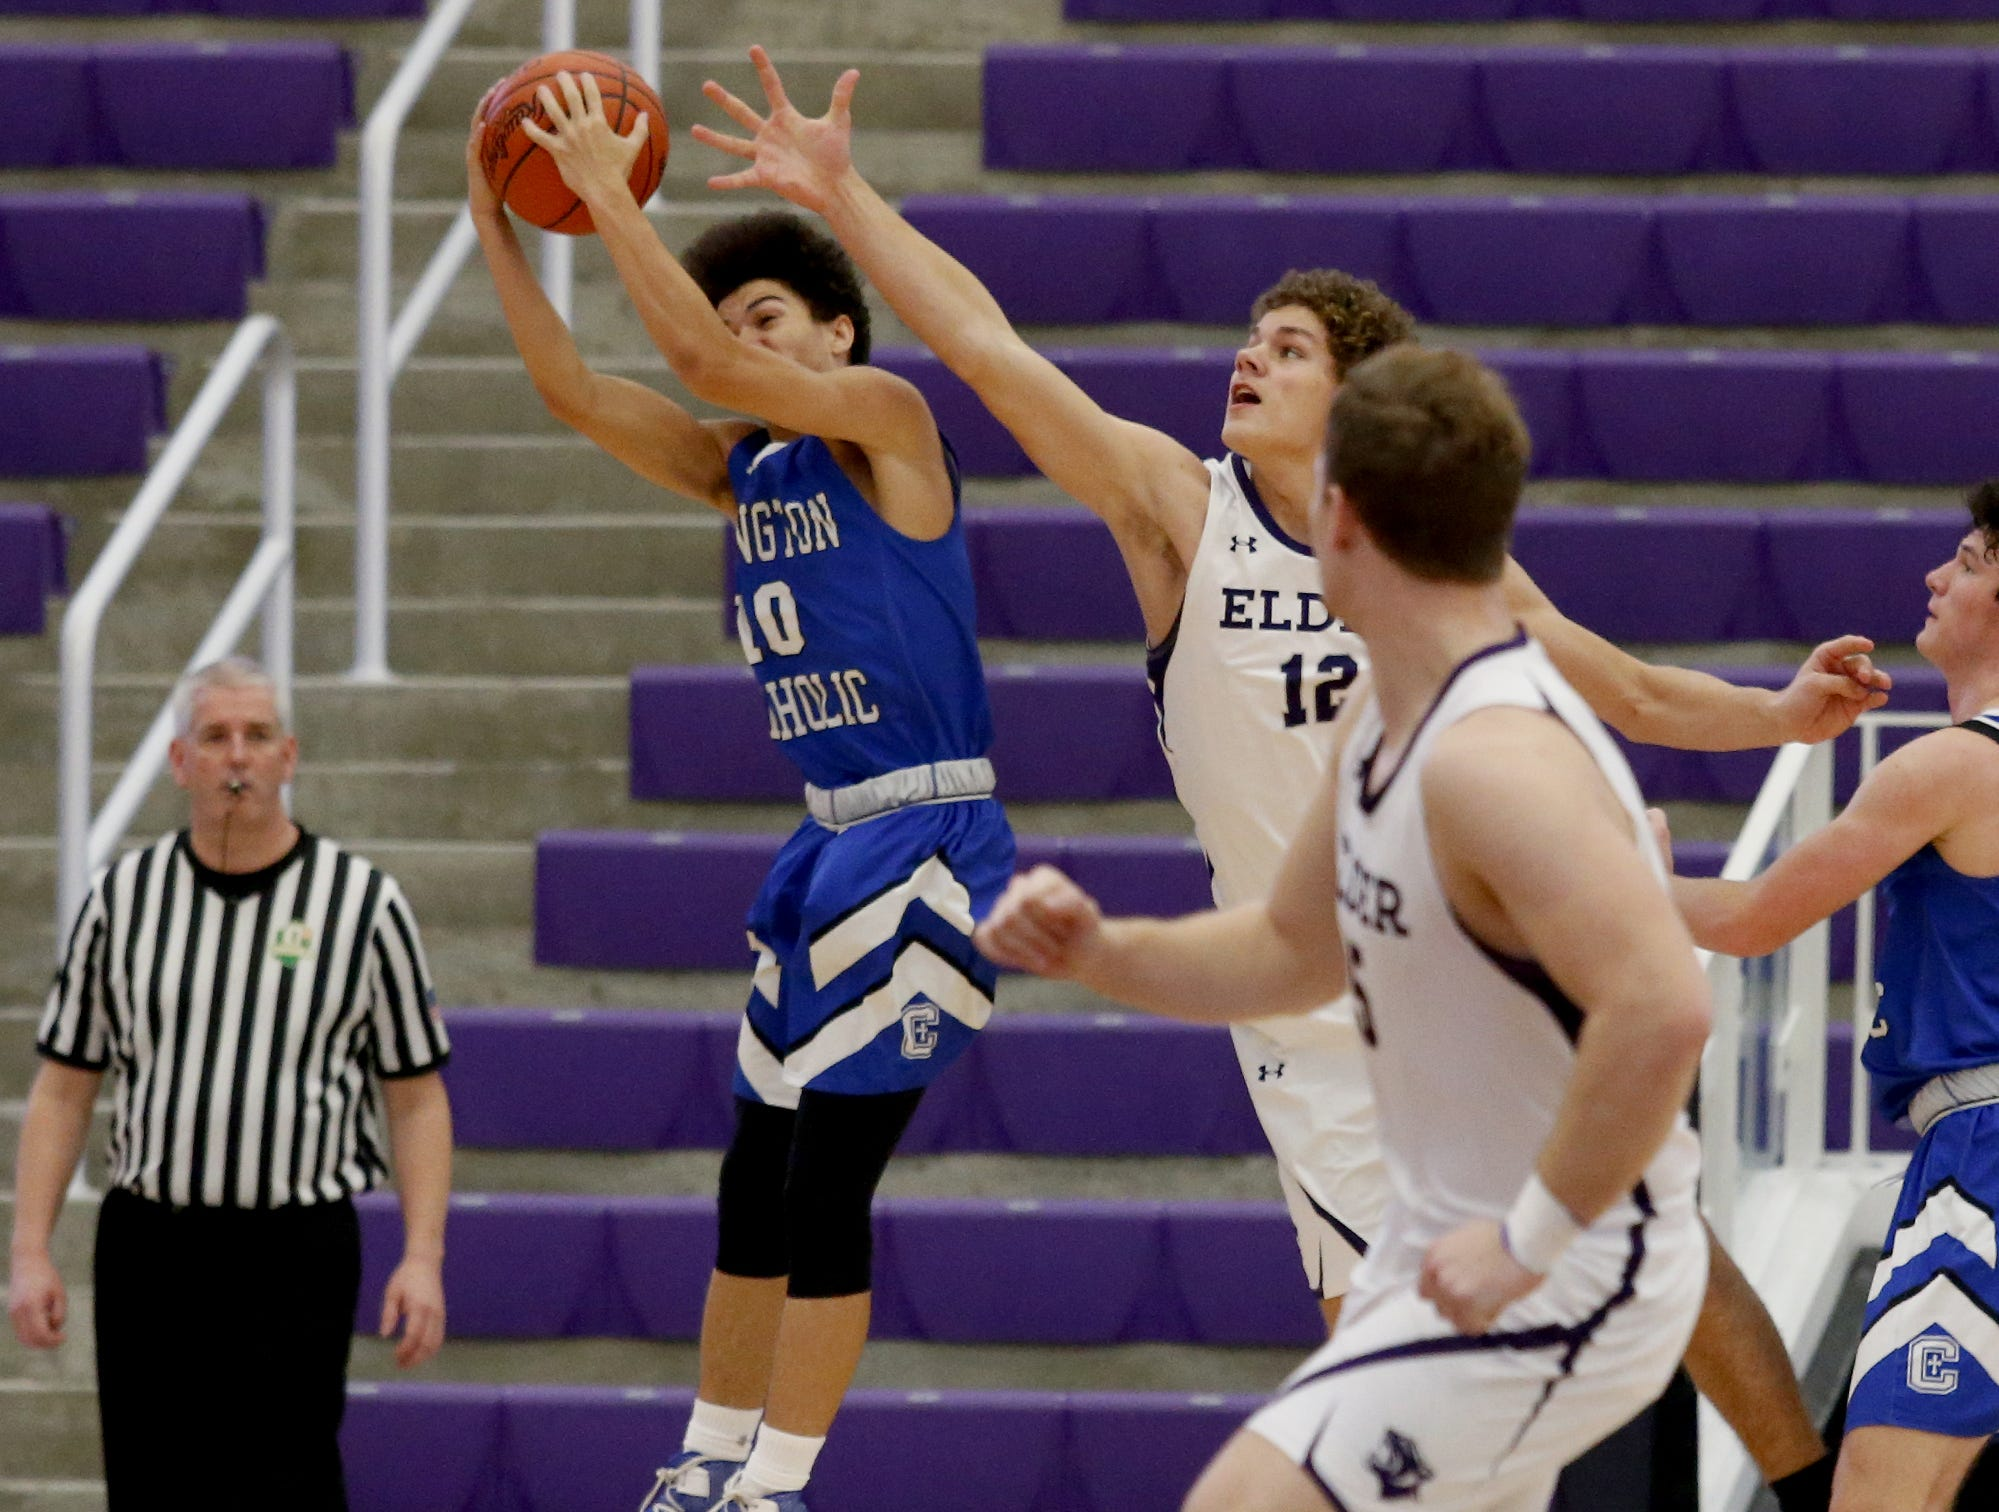 Covington Catholic guard Jalen Bowles grabs a defensive rebound in front of Elder center Joe Royer during the Midwest King Classic at Jerry Lucas Court in Wade E. Miller Arena in Middletown Saturday, Jan. 19, 2019.